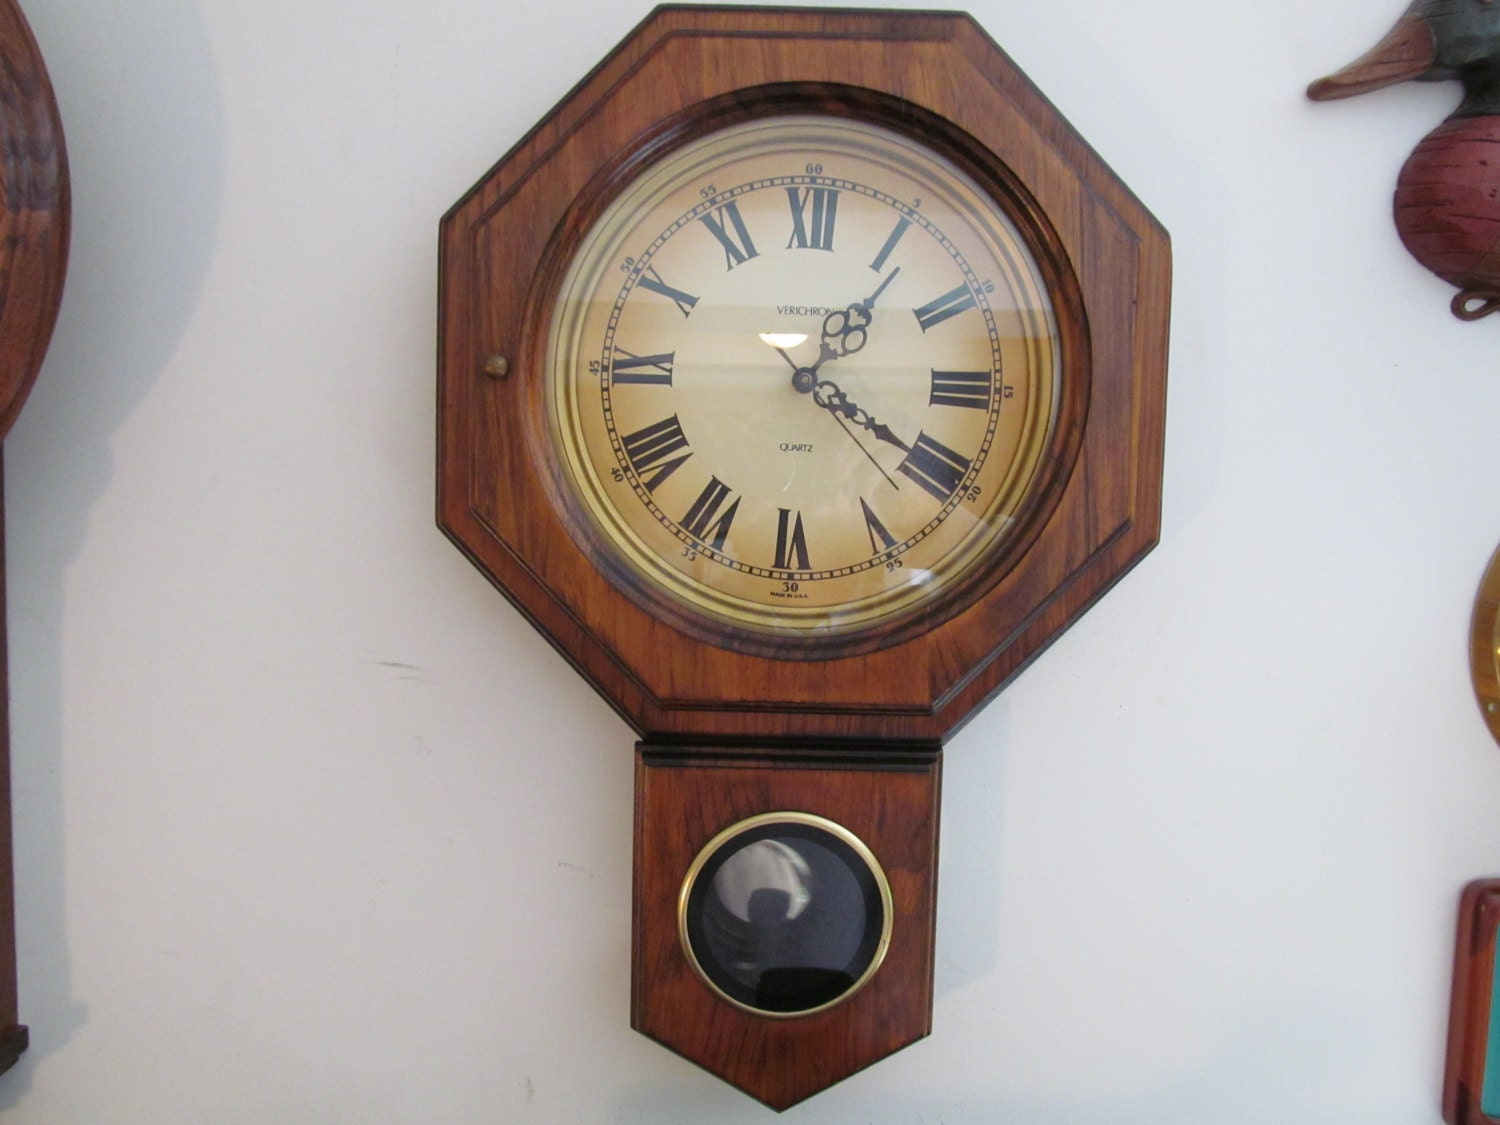 Vintage Wall Clock With Pendulum By Verichron Made By